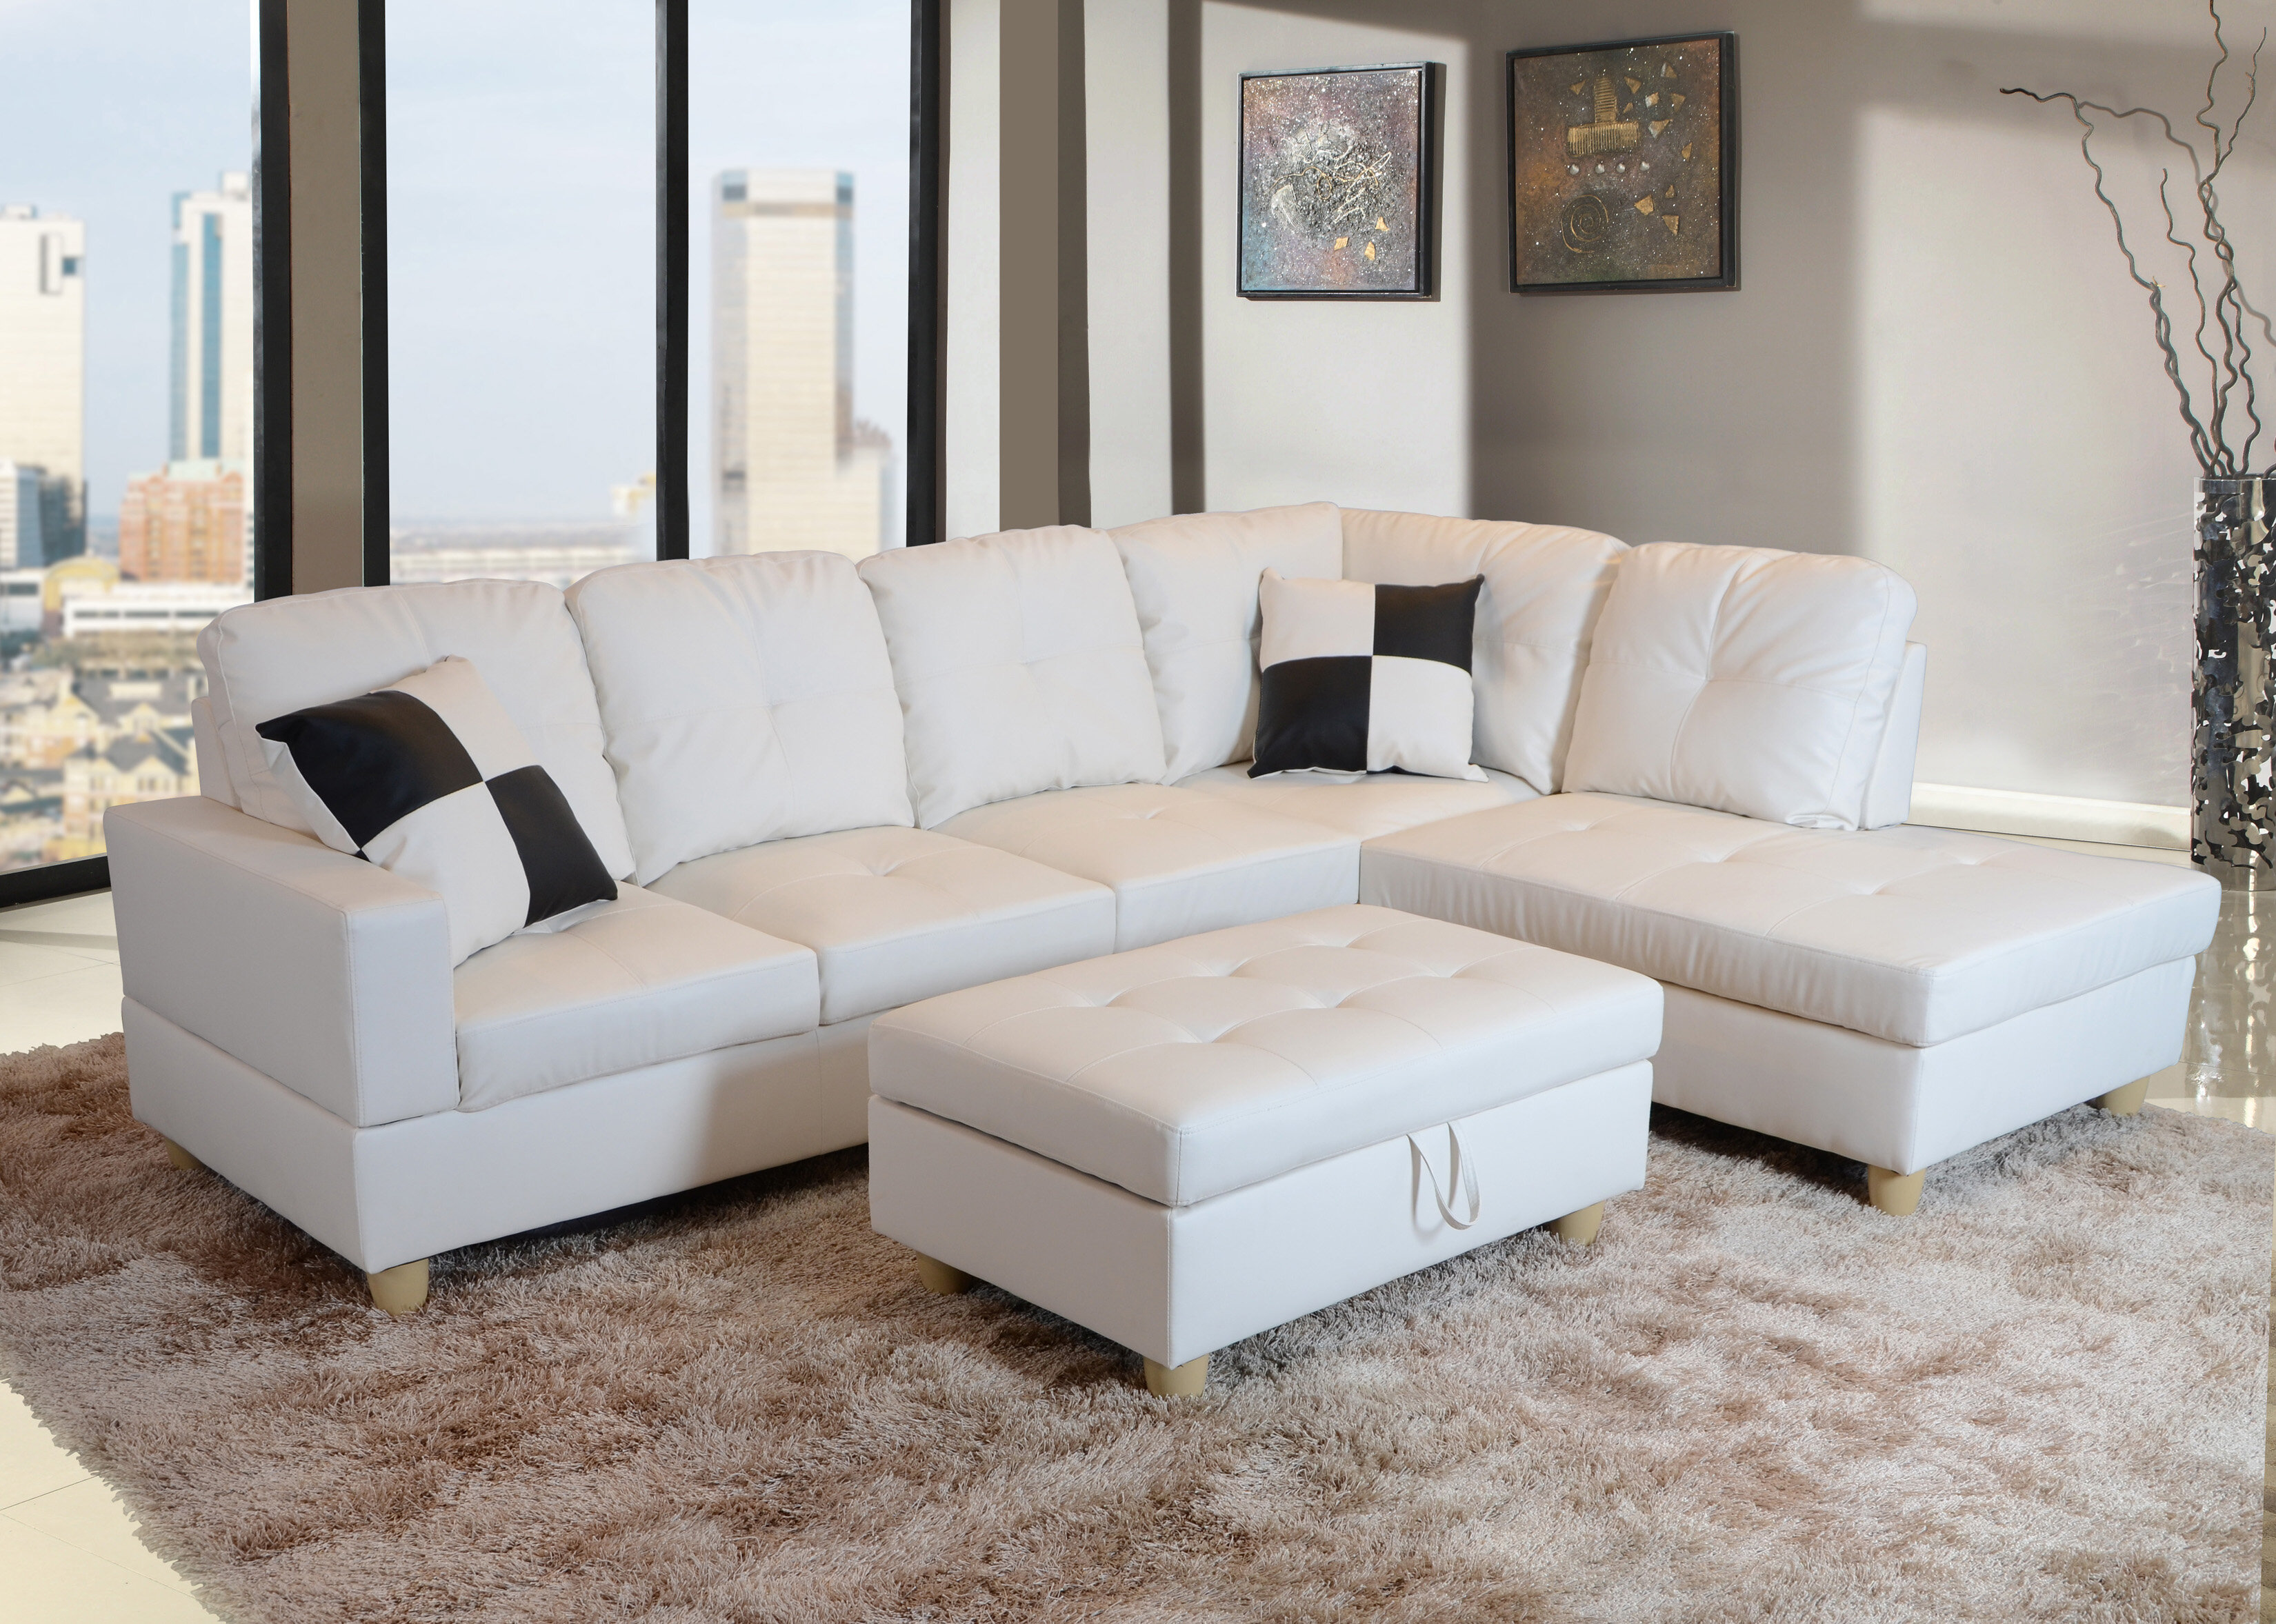 Remarkable Maumee Sectional With Ottoman Machost Co Dining Chair Design Ideas Machostcouk